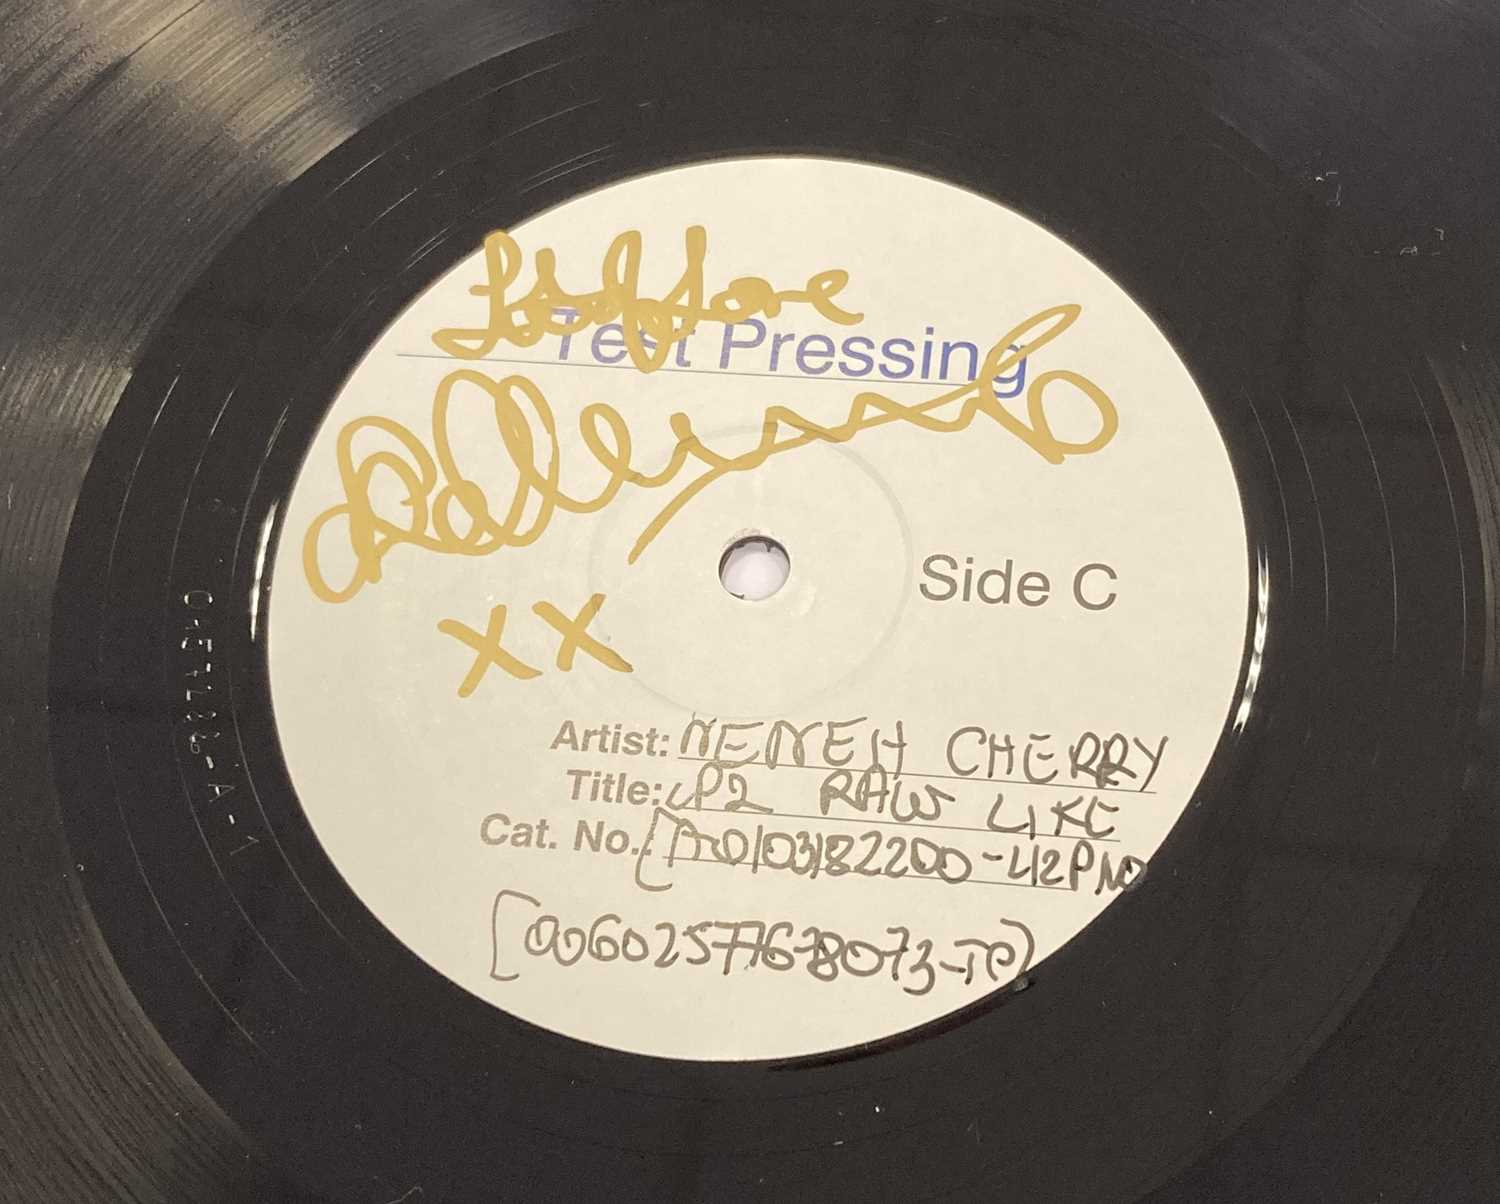 NENEH CHERRY SIGNED WHITE LABEL TEST PRESSING. - Image 2 of 2